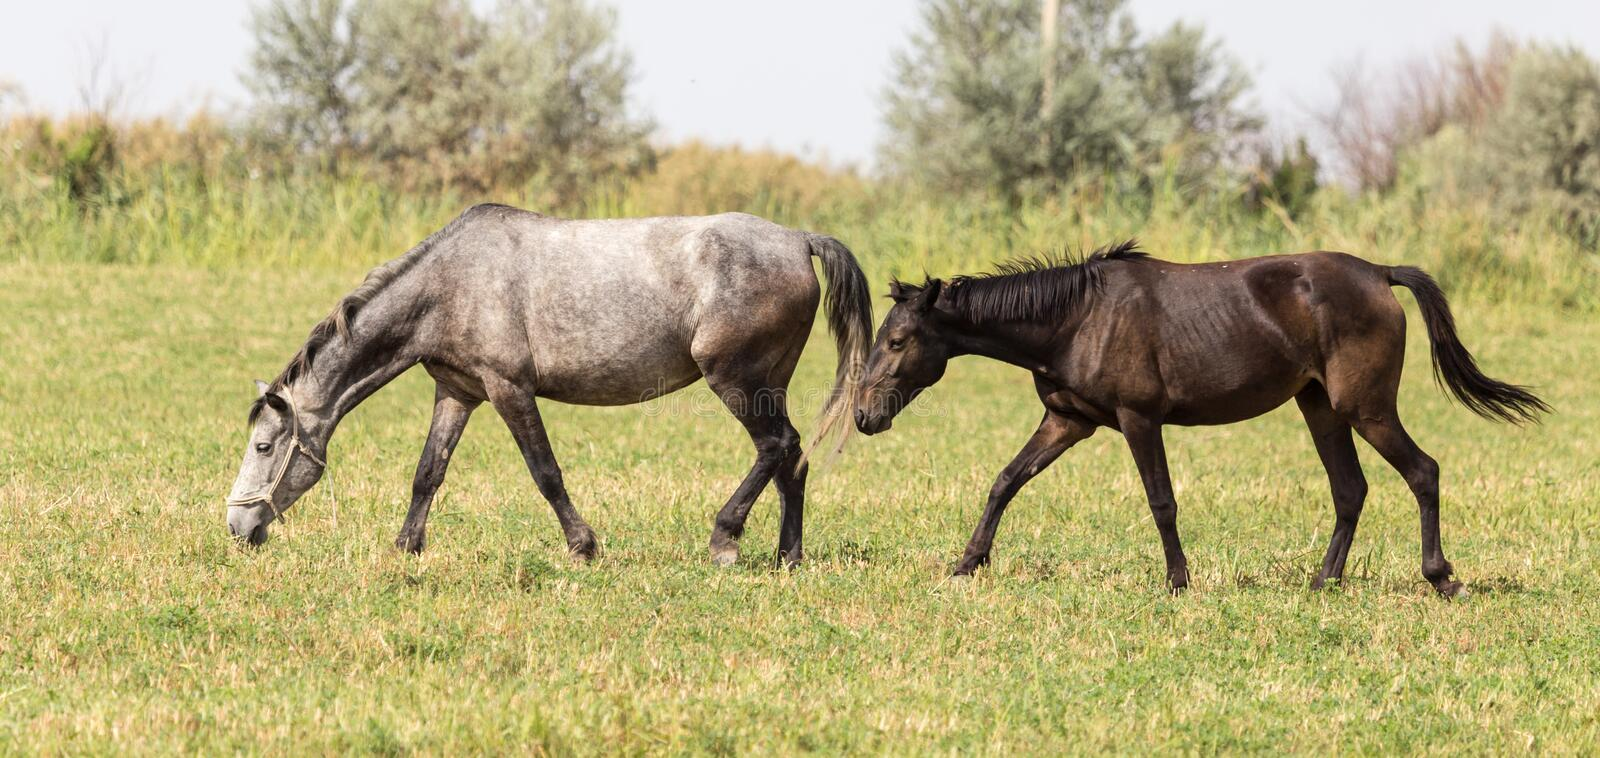 Three horses in a pasture in nature stock image